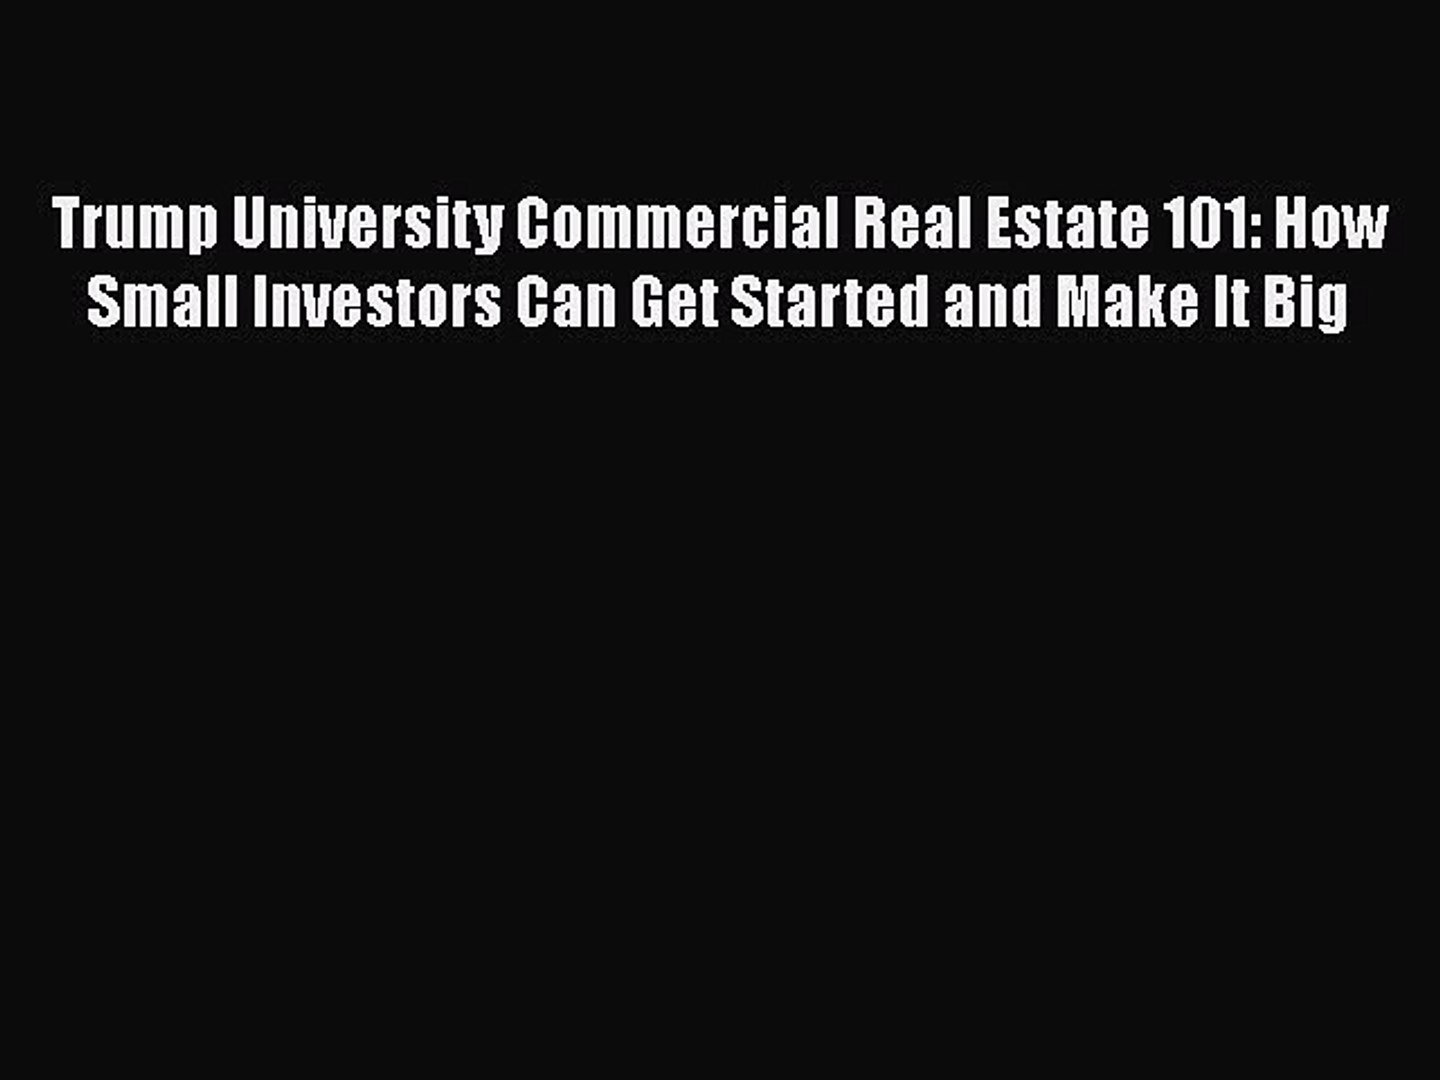 [Read book] Trump University Commercial Real Estate 101: How Small Investors Can Get Started